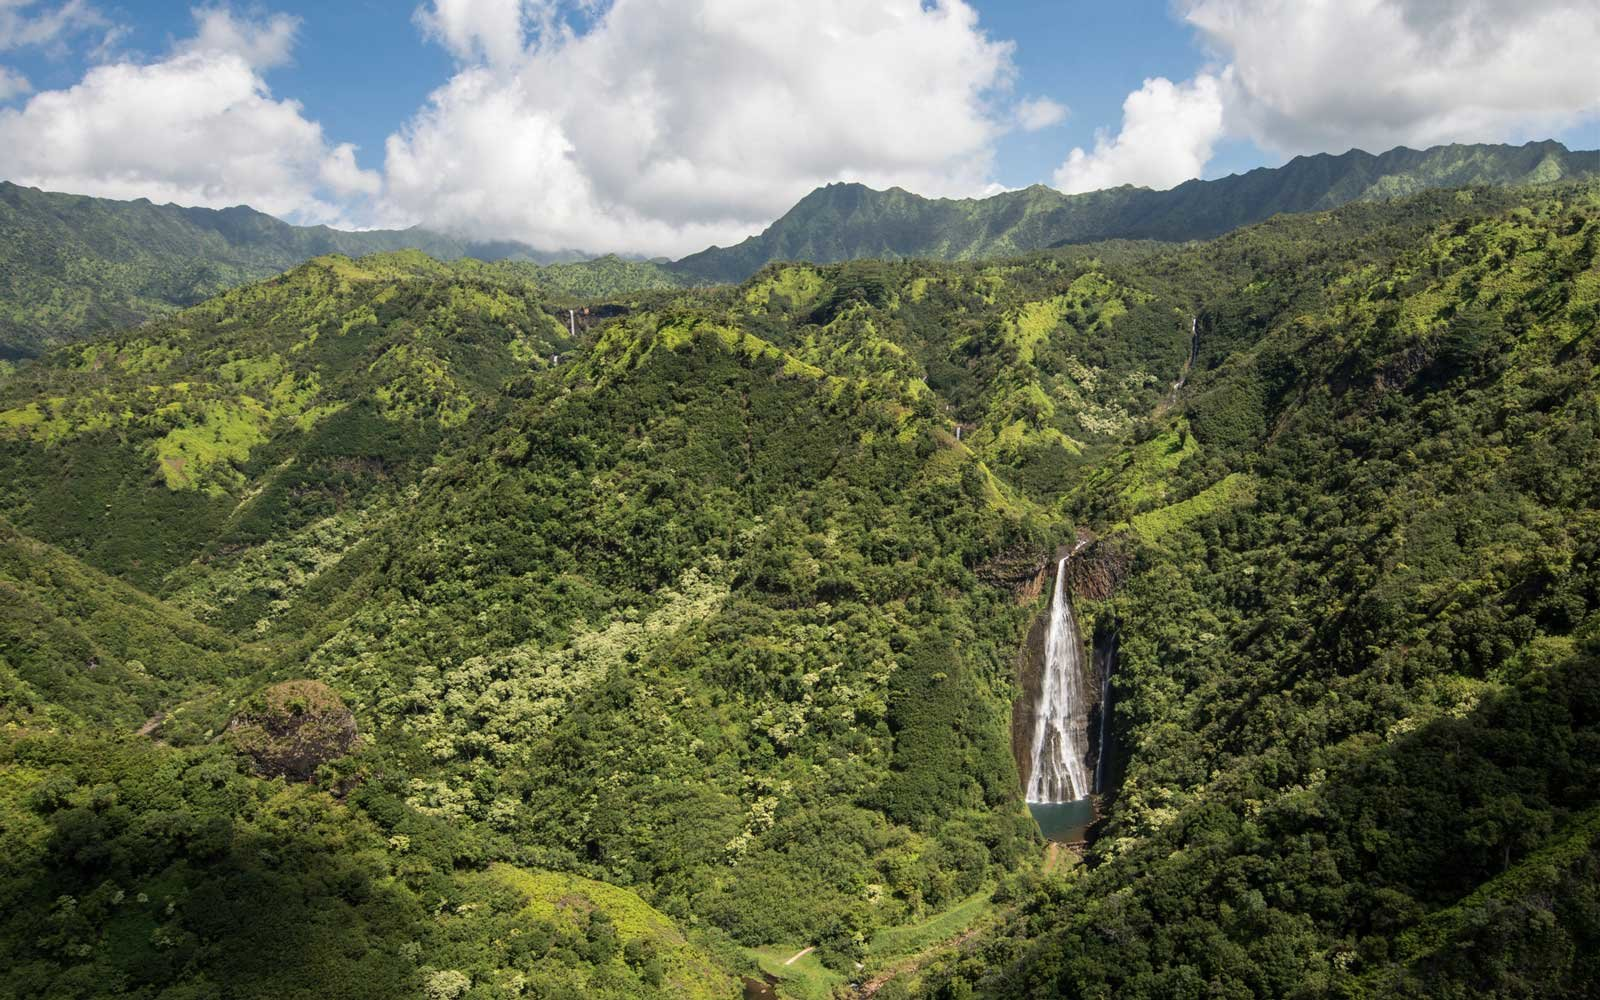 Aerial view of waterfall Manawaiopuna Falls, used in Jurassic park, Kauai, Hawaii